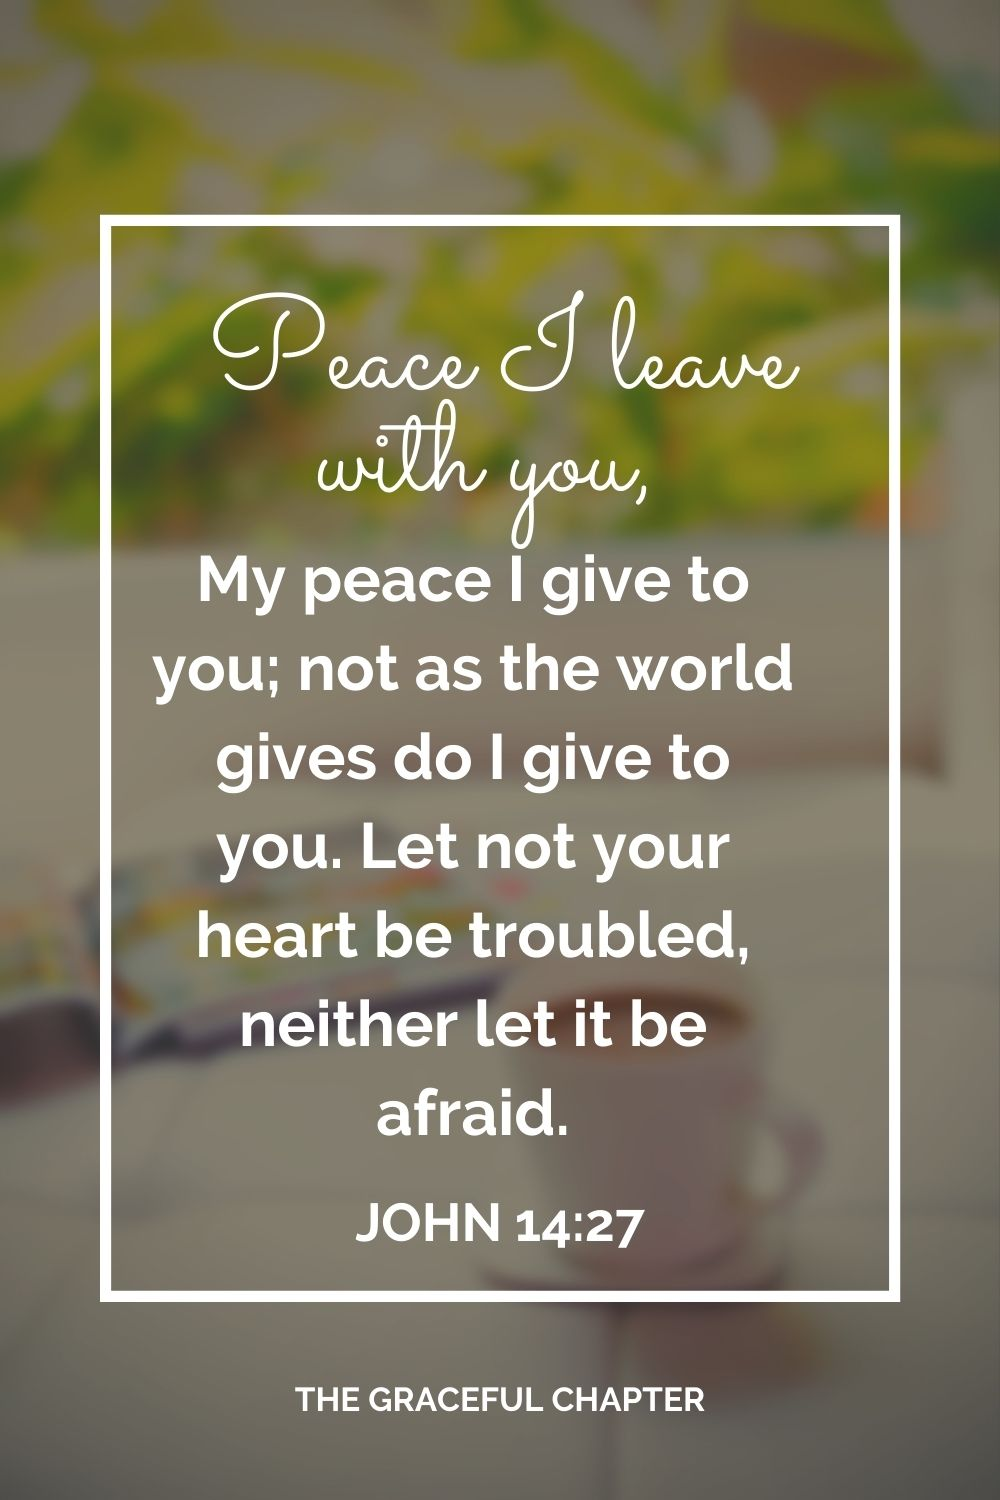 Peace I leave with you, My peace I give to you; not as the world gives do I give to you. Let not your heart be troubled, neither let it be afraid. John 14:27